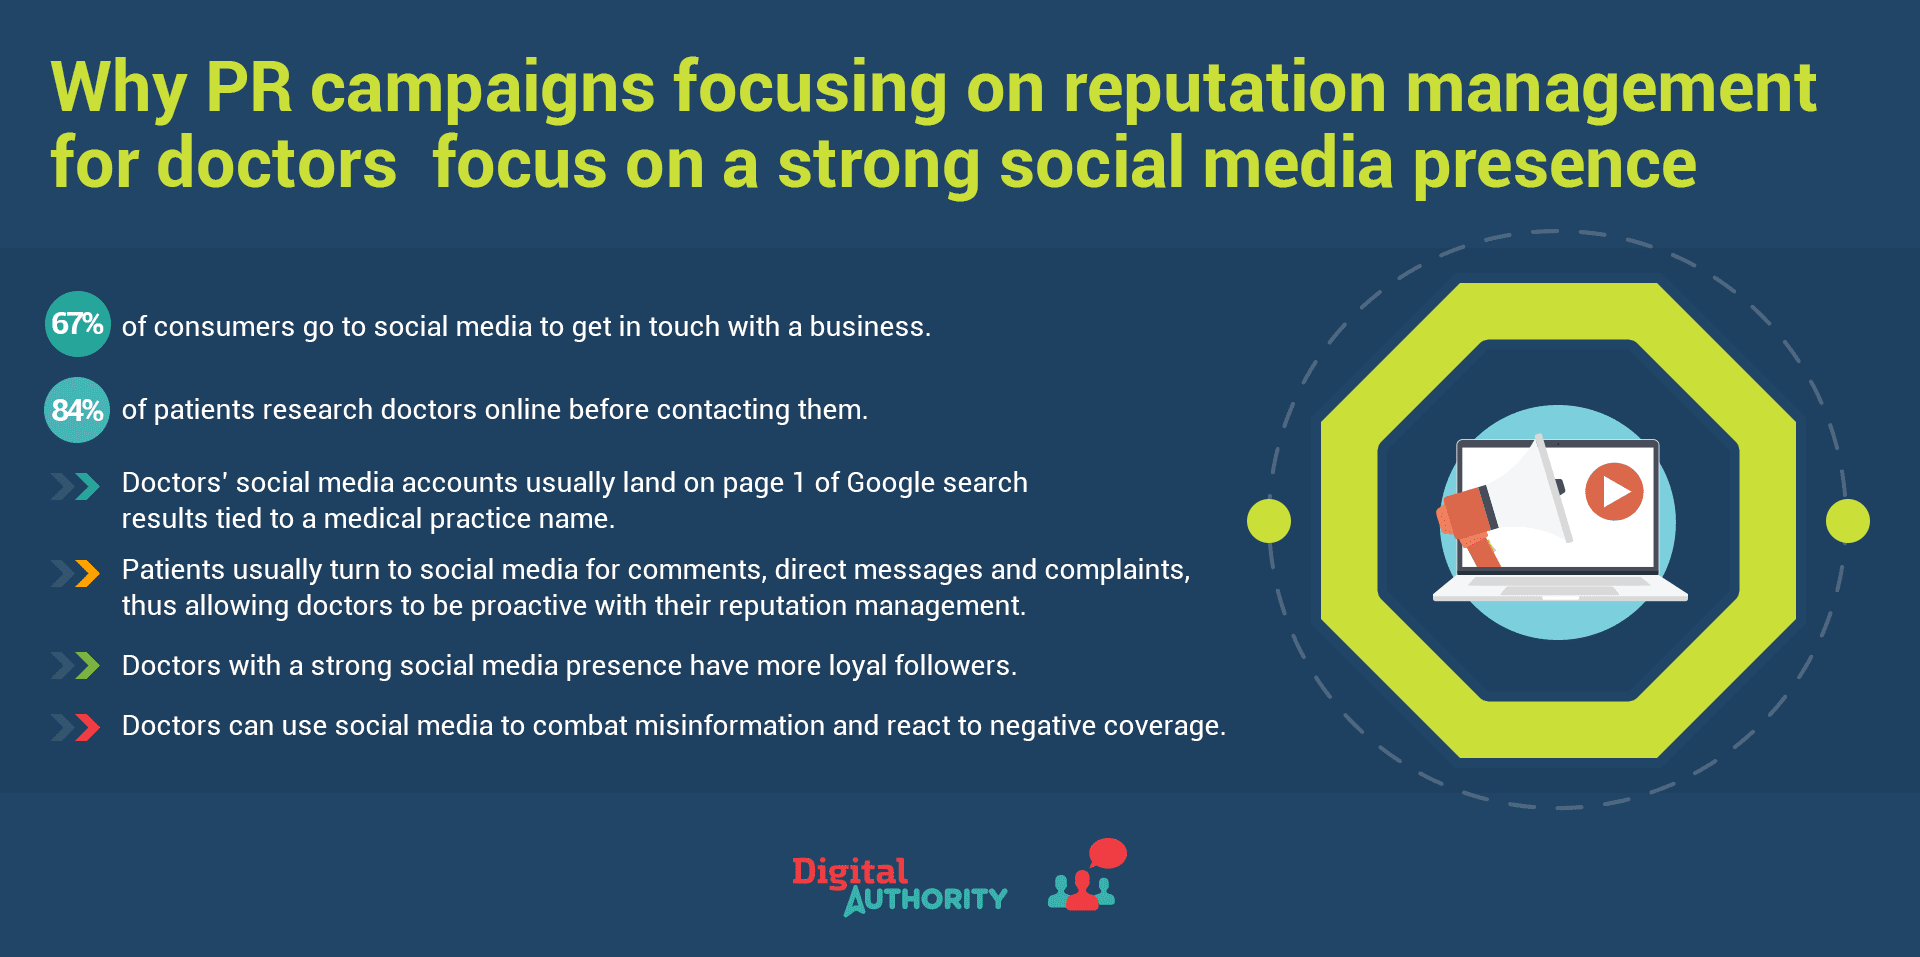 Why PR campaigns focusing on reputation management for doctors focus on strong social media presence. 67% of consumers go to social media to get in touch with a business. 84% of patients research doctors online before contacting them.